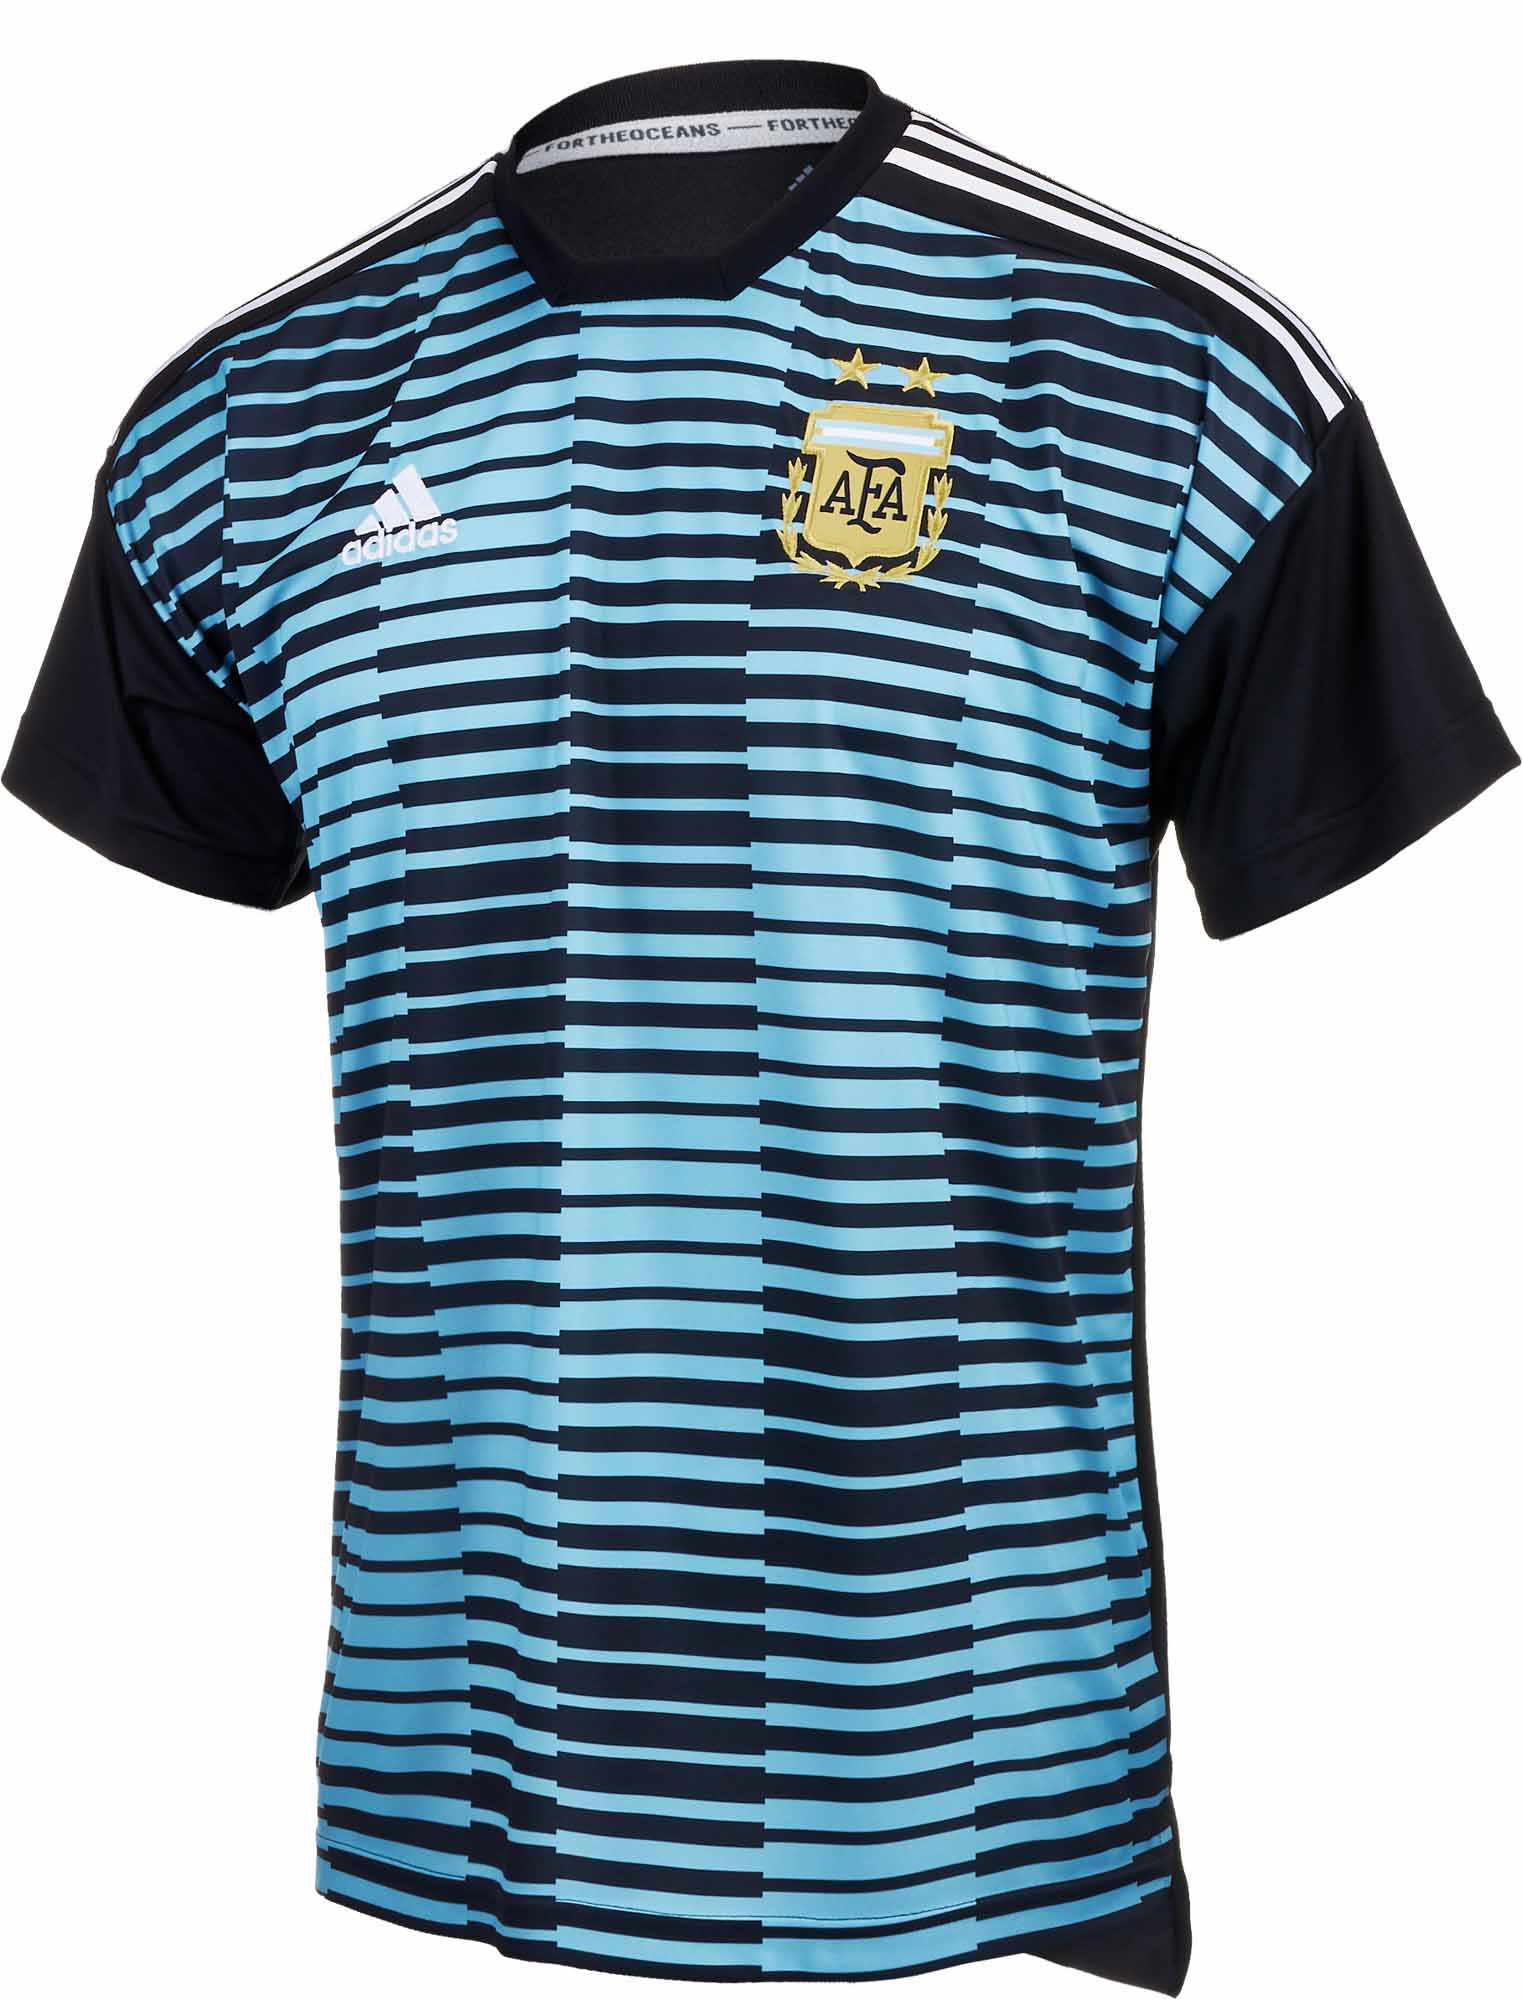 d8a057917 adidas Argentina Pre-match Jersey - Youth 2018-19 - SoccerPro